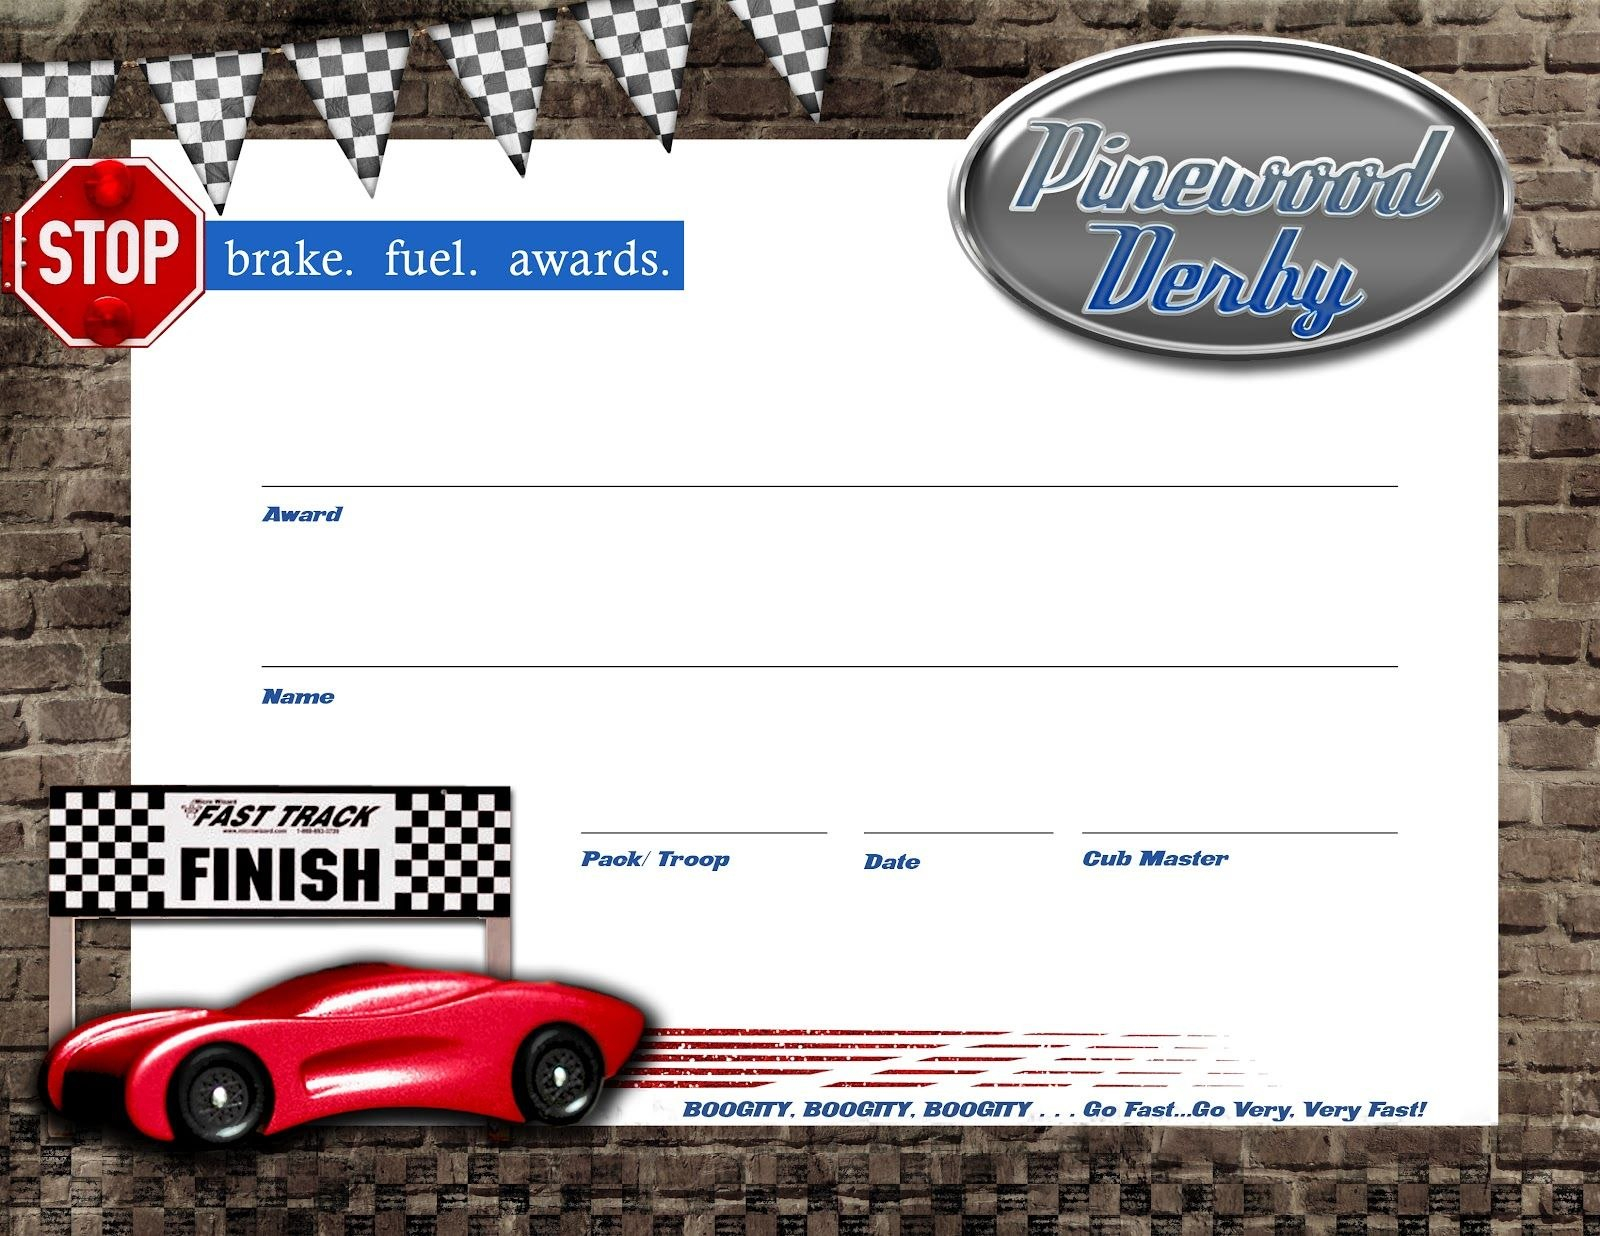 Pinewood Derby Certificate  Free Download  Lanyards  Boy Scouts Intended For Pinewood Derby Certificate Template